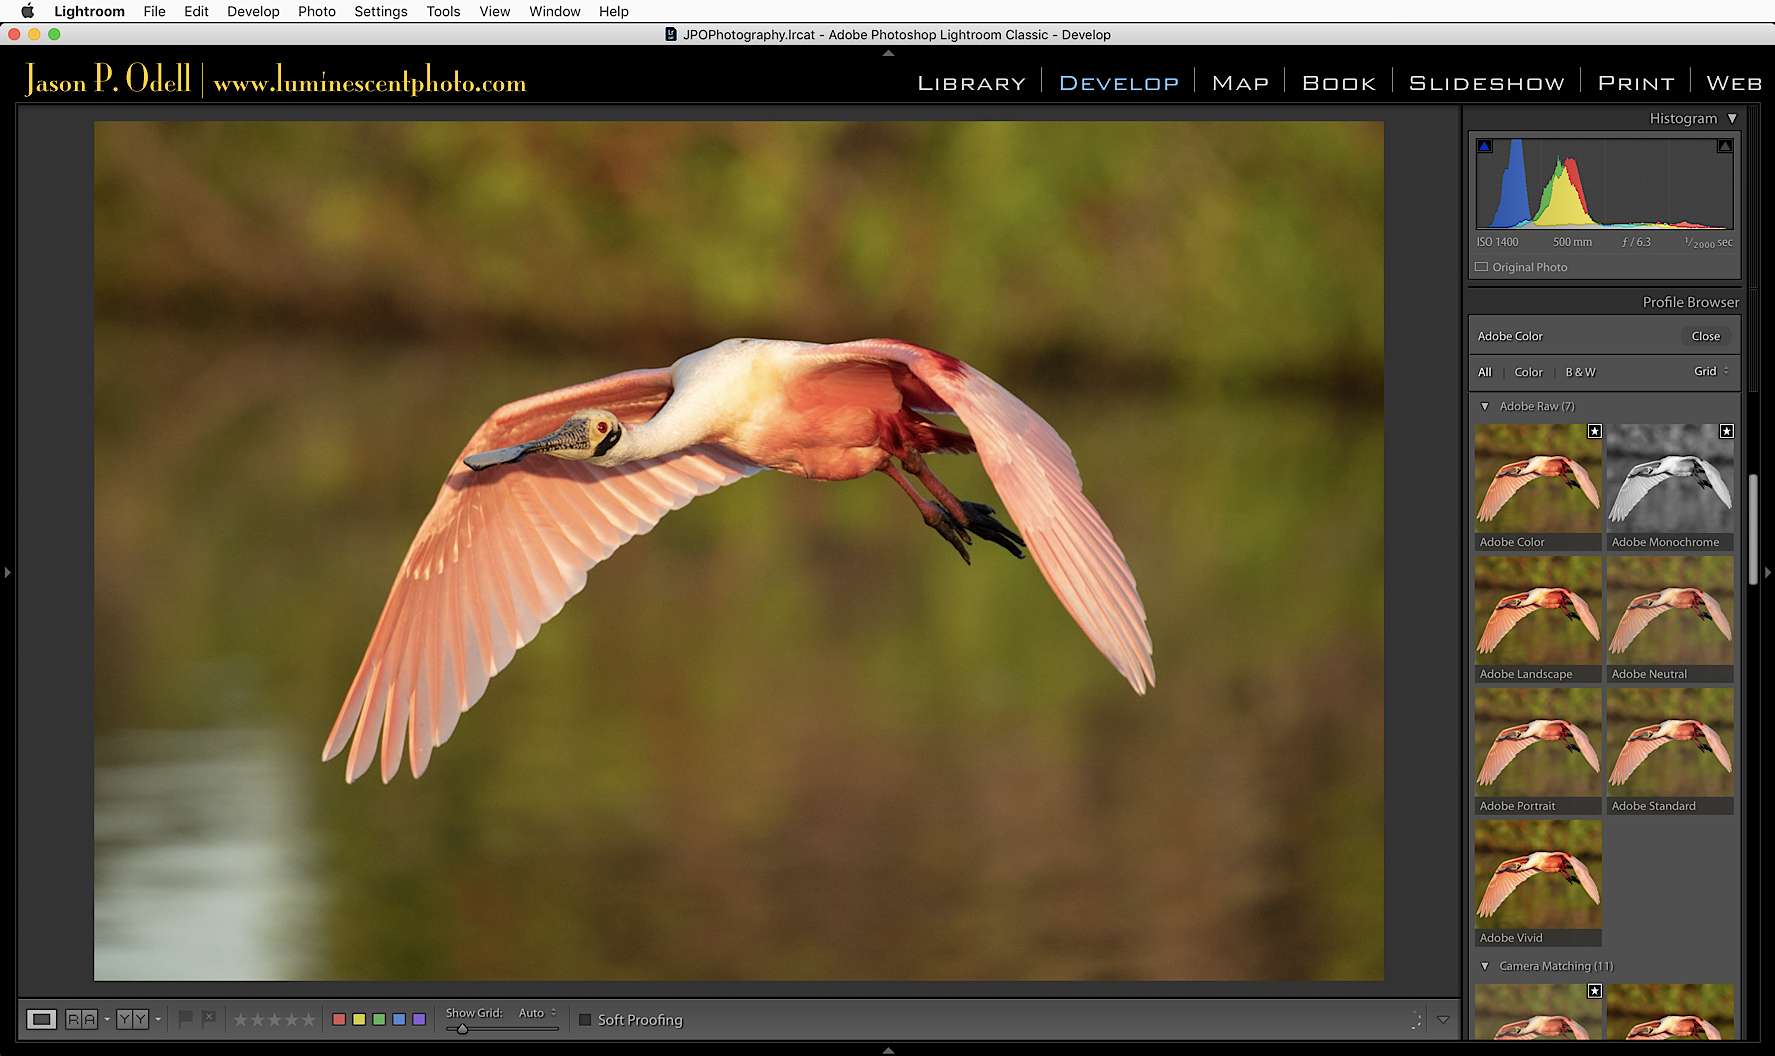 What's new in Lightroom Classic CC 7.3